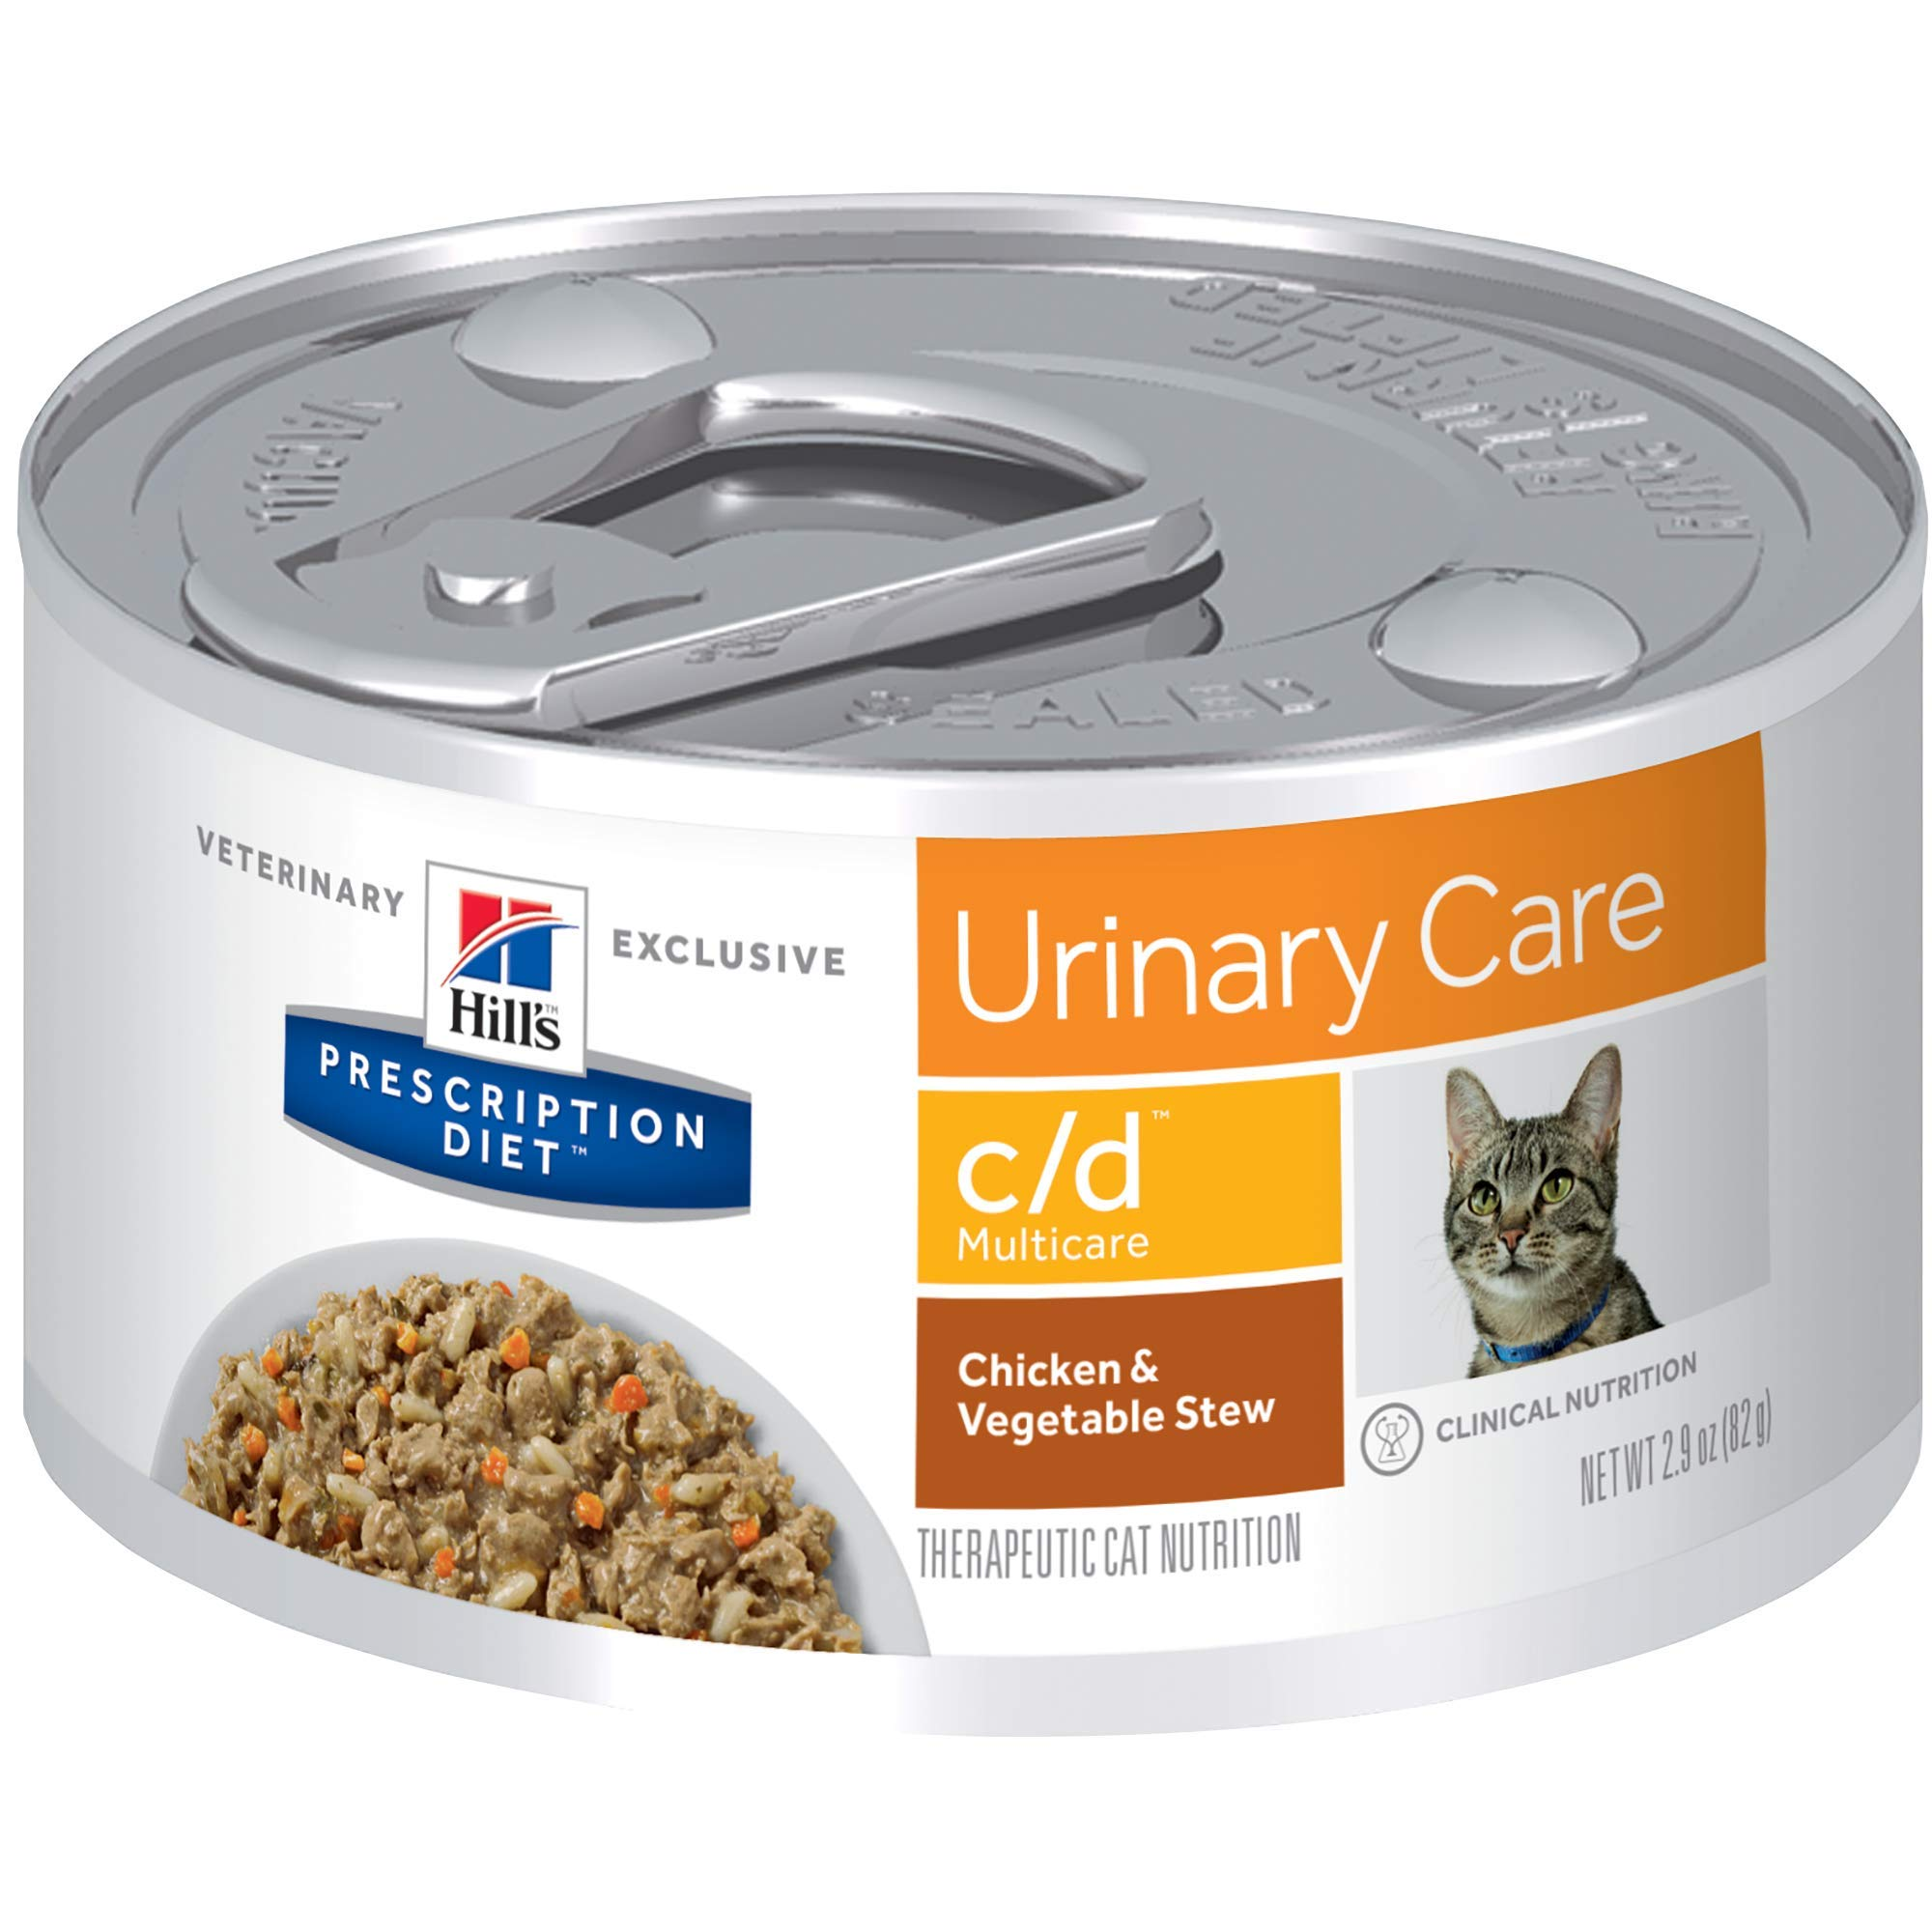 Hill's Prescription Diet c/d Multicare Urinary Care Wet Cat Food